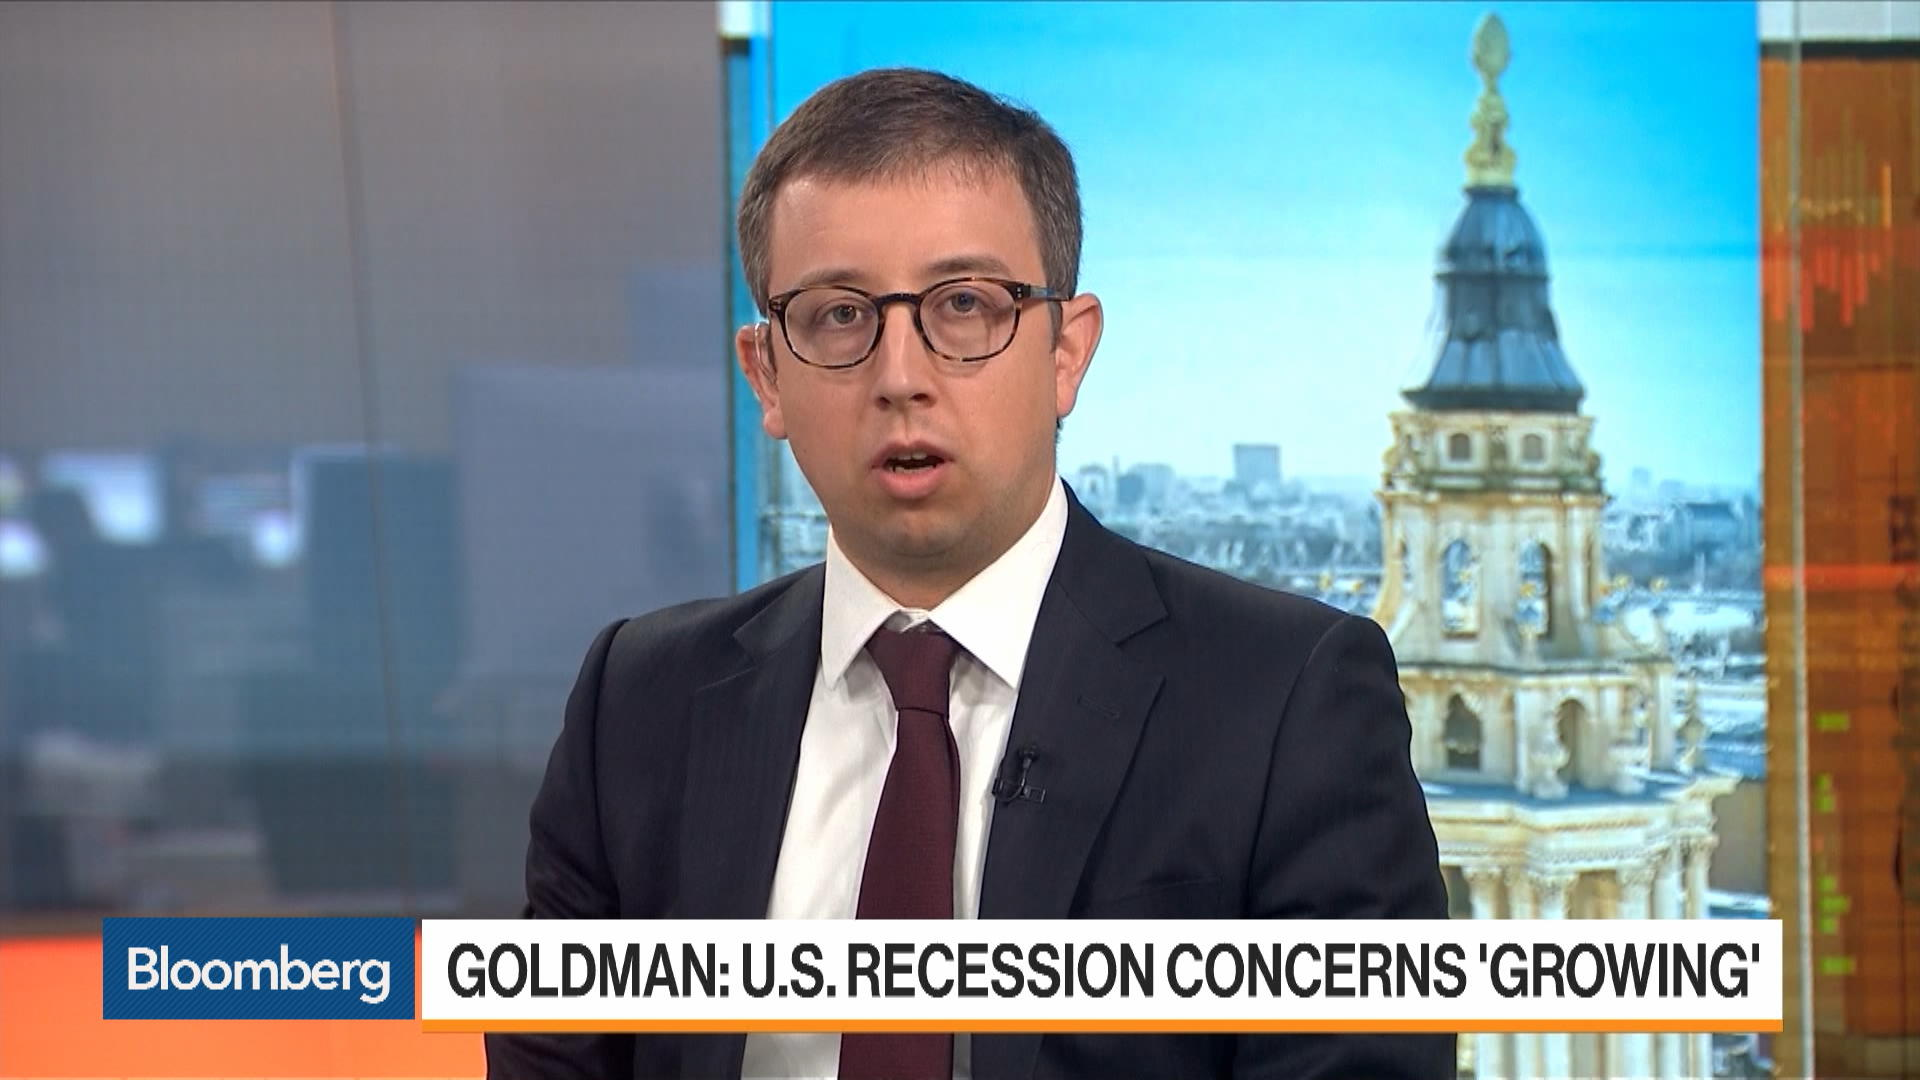 Morgan Stanley Chief Cross Asset Strategist Andrew Sheets on Recession,  Earnings Recession, Dollar